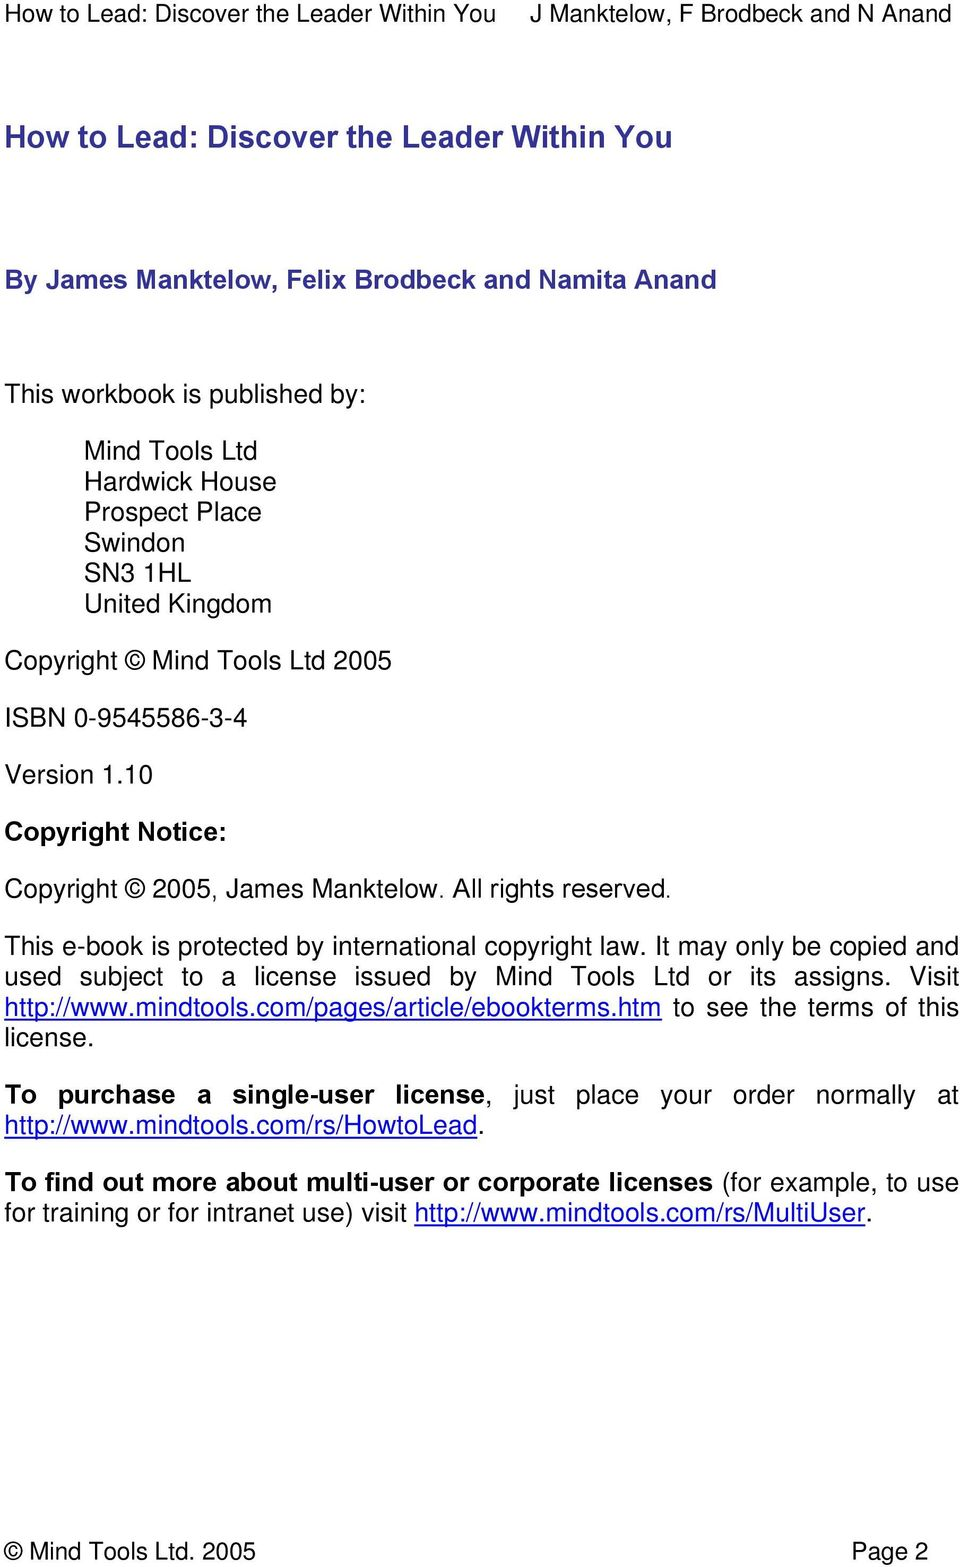 It may only be copied and used subject to a license issued by Mind Tools Ltd or its assigns. Visit http://www.mindtools.com/pages/article/ebookterms.htm to see the terms of this license.